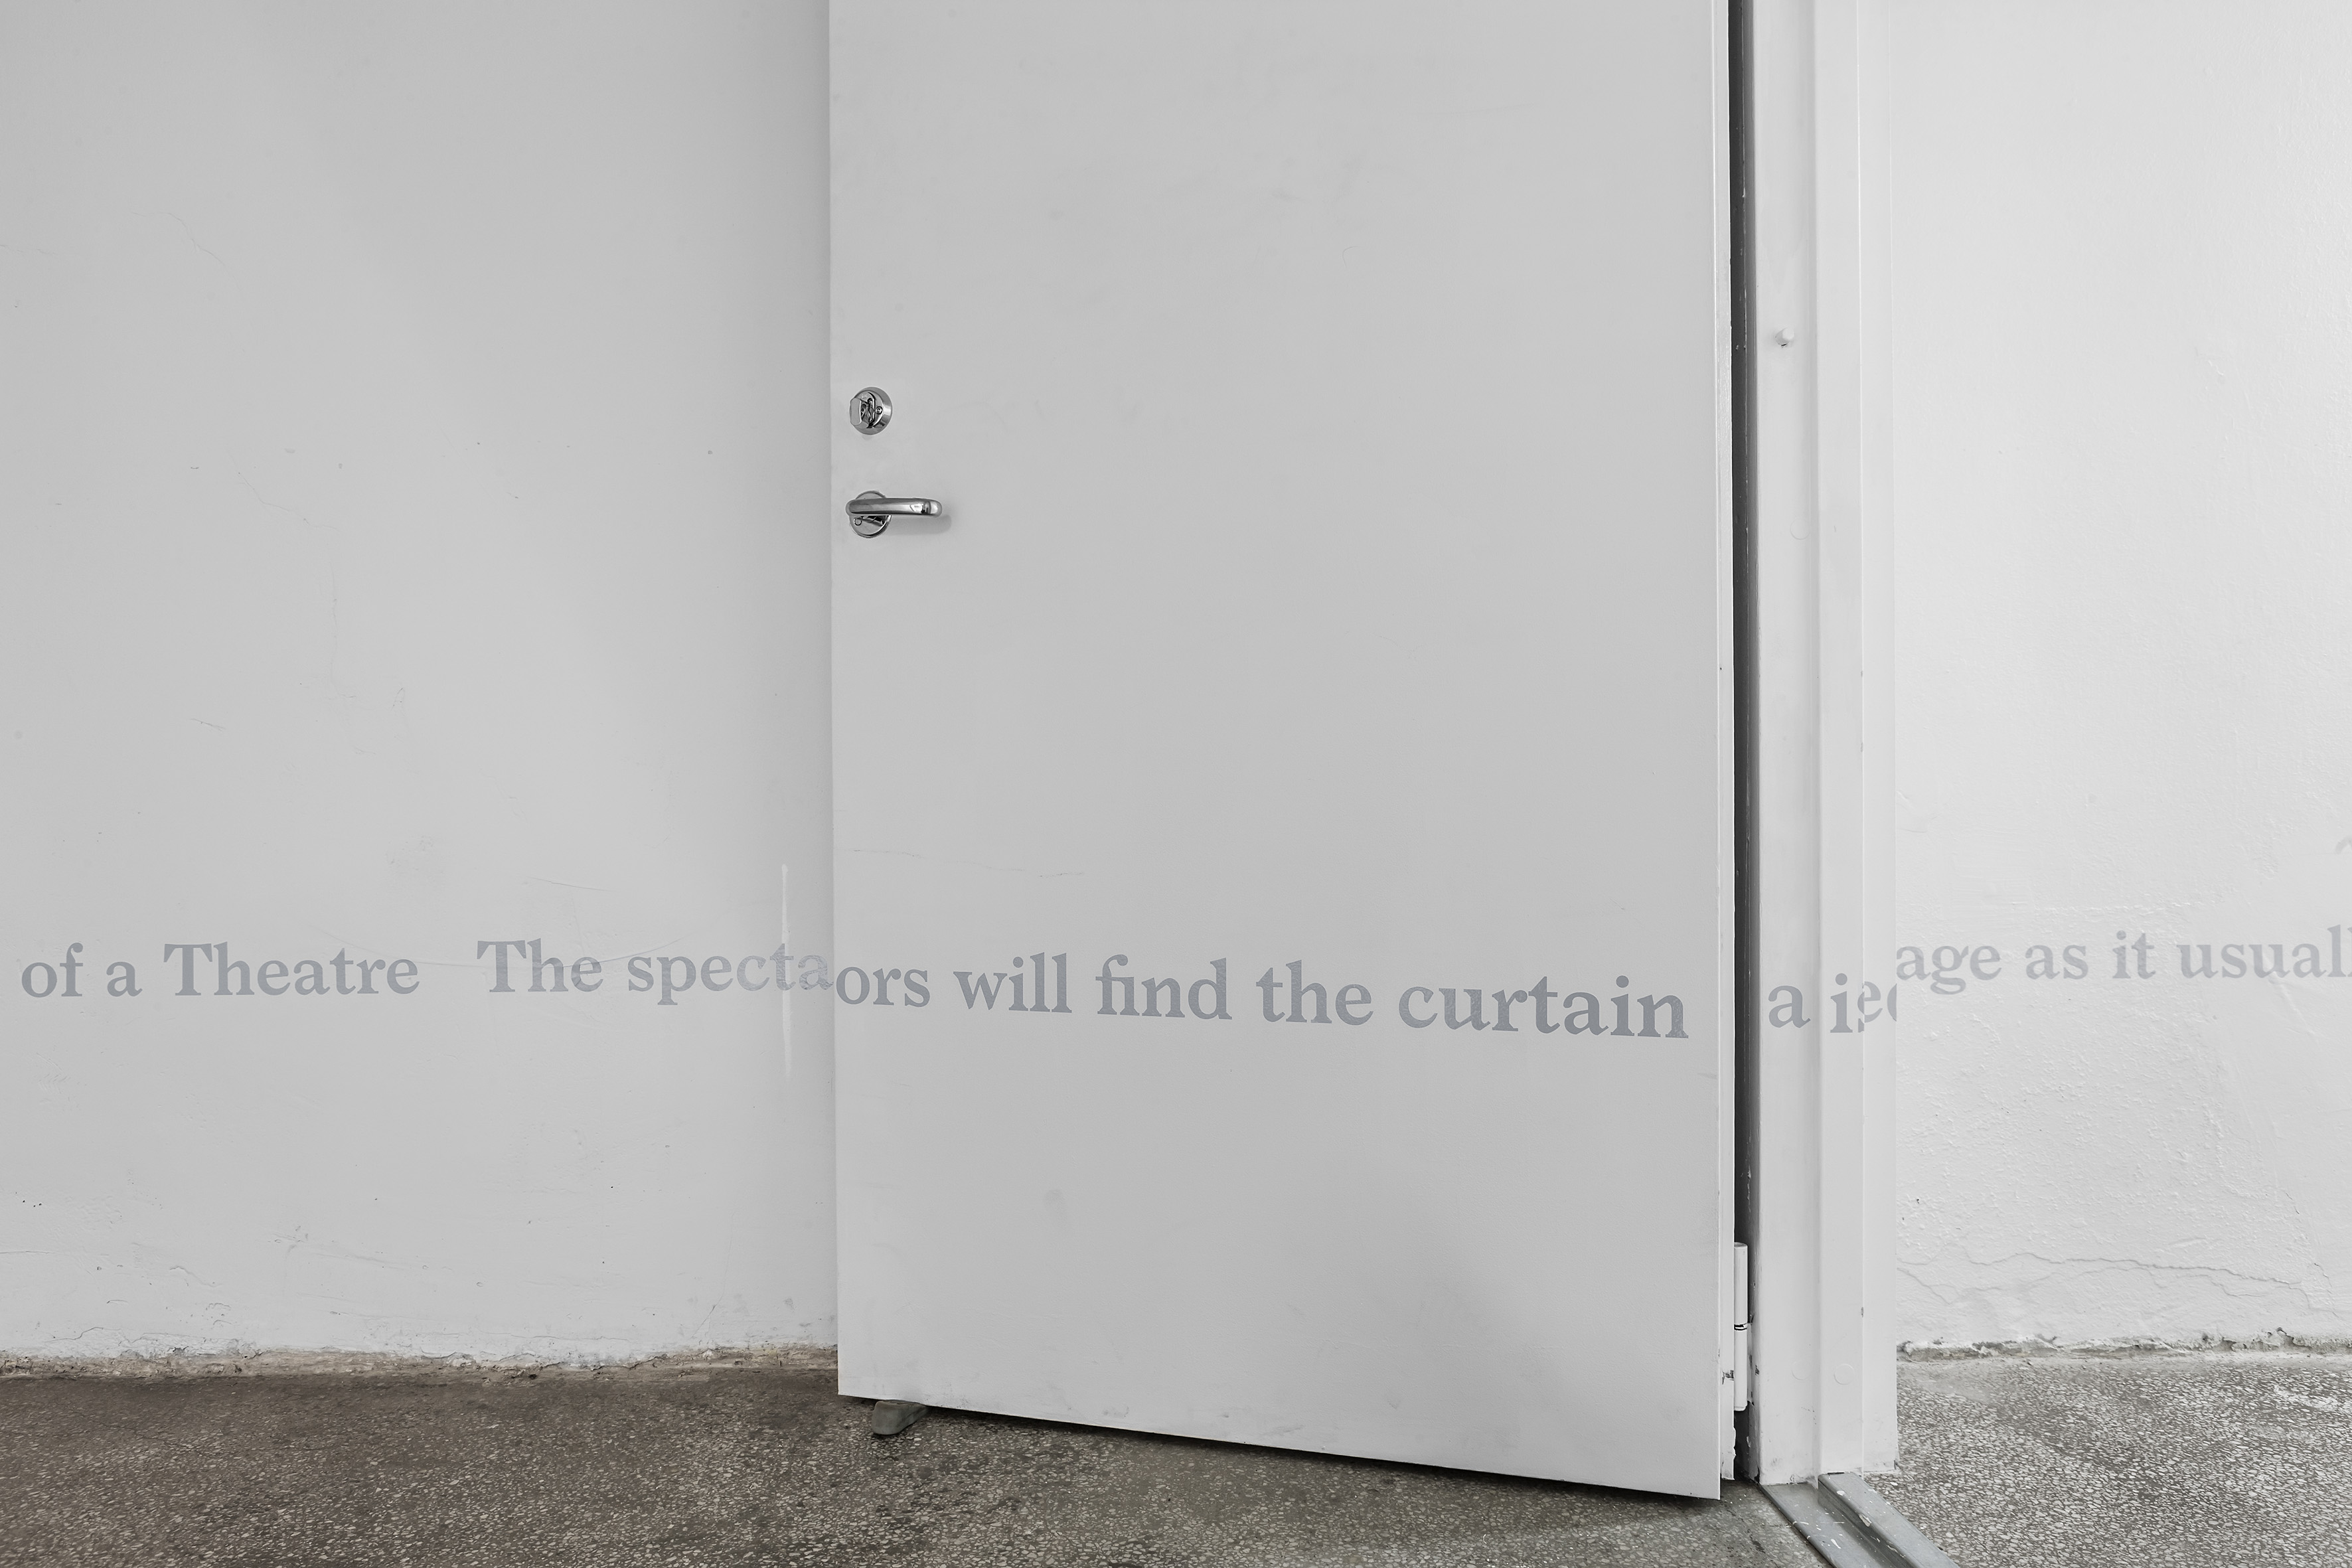 Installation view : Neil Doshi, Scenes From Scenes From a Play, 2015, vinyl wall text